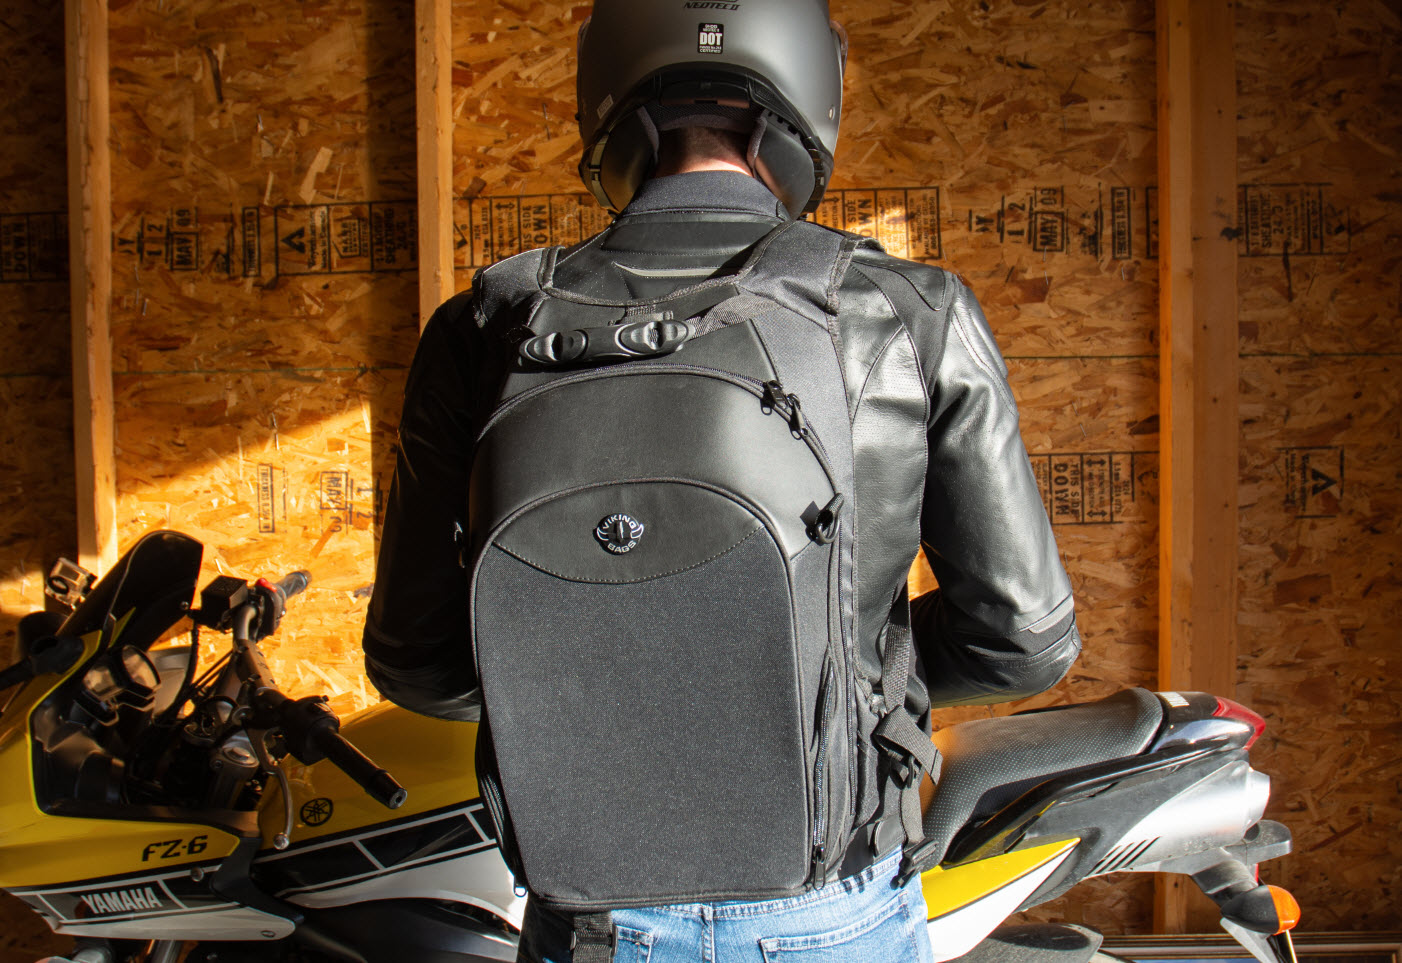 Viking Bags Motorcycle Backpack Review